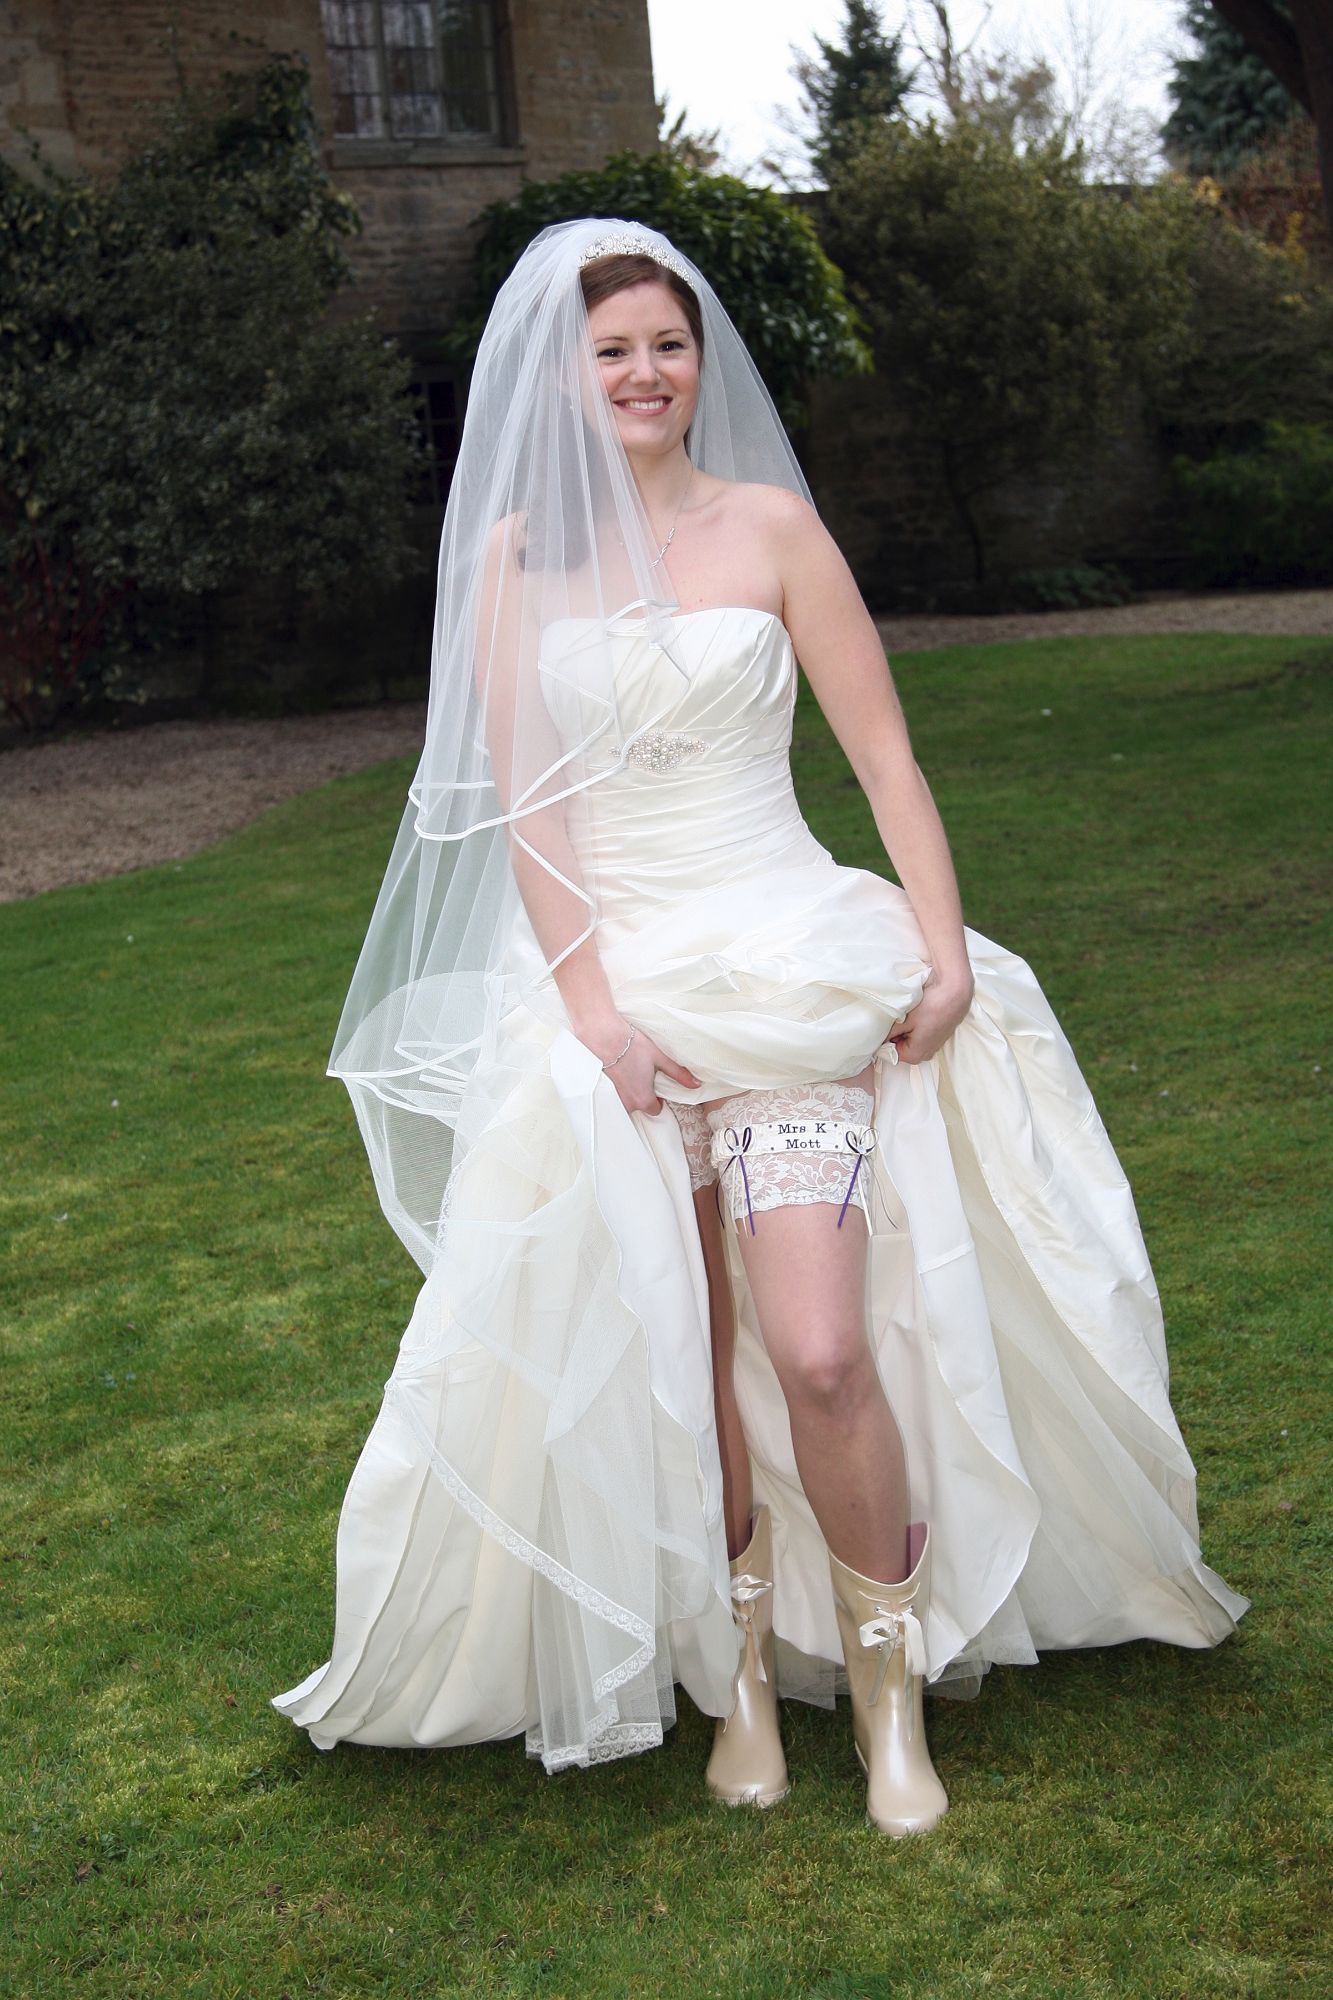 Bride showing off her bridal garter and wedding wellington boots.